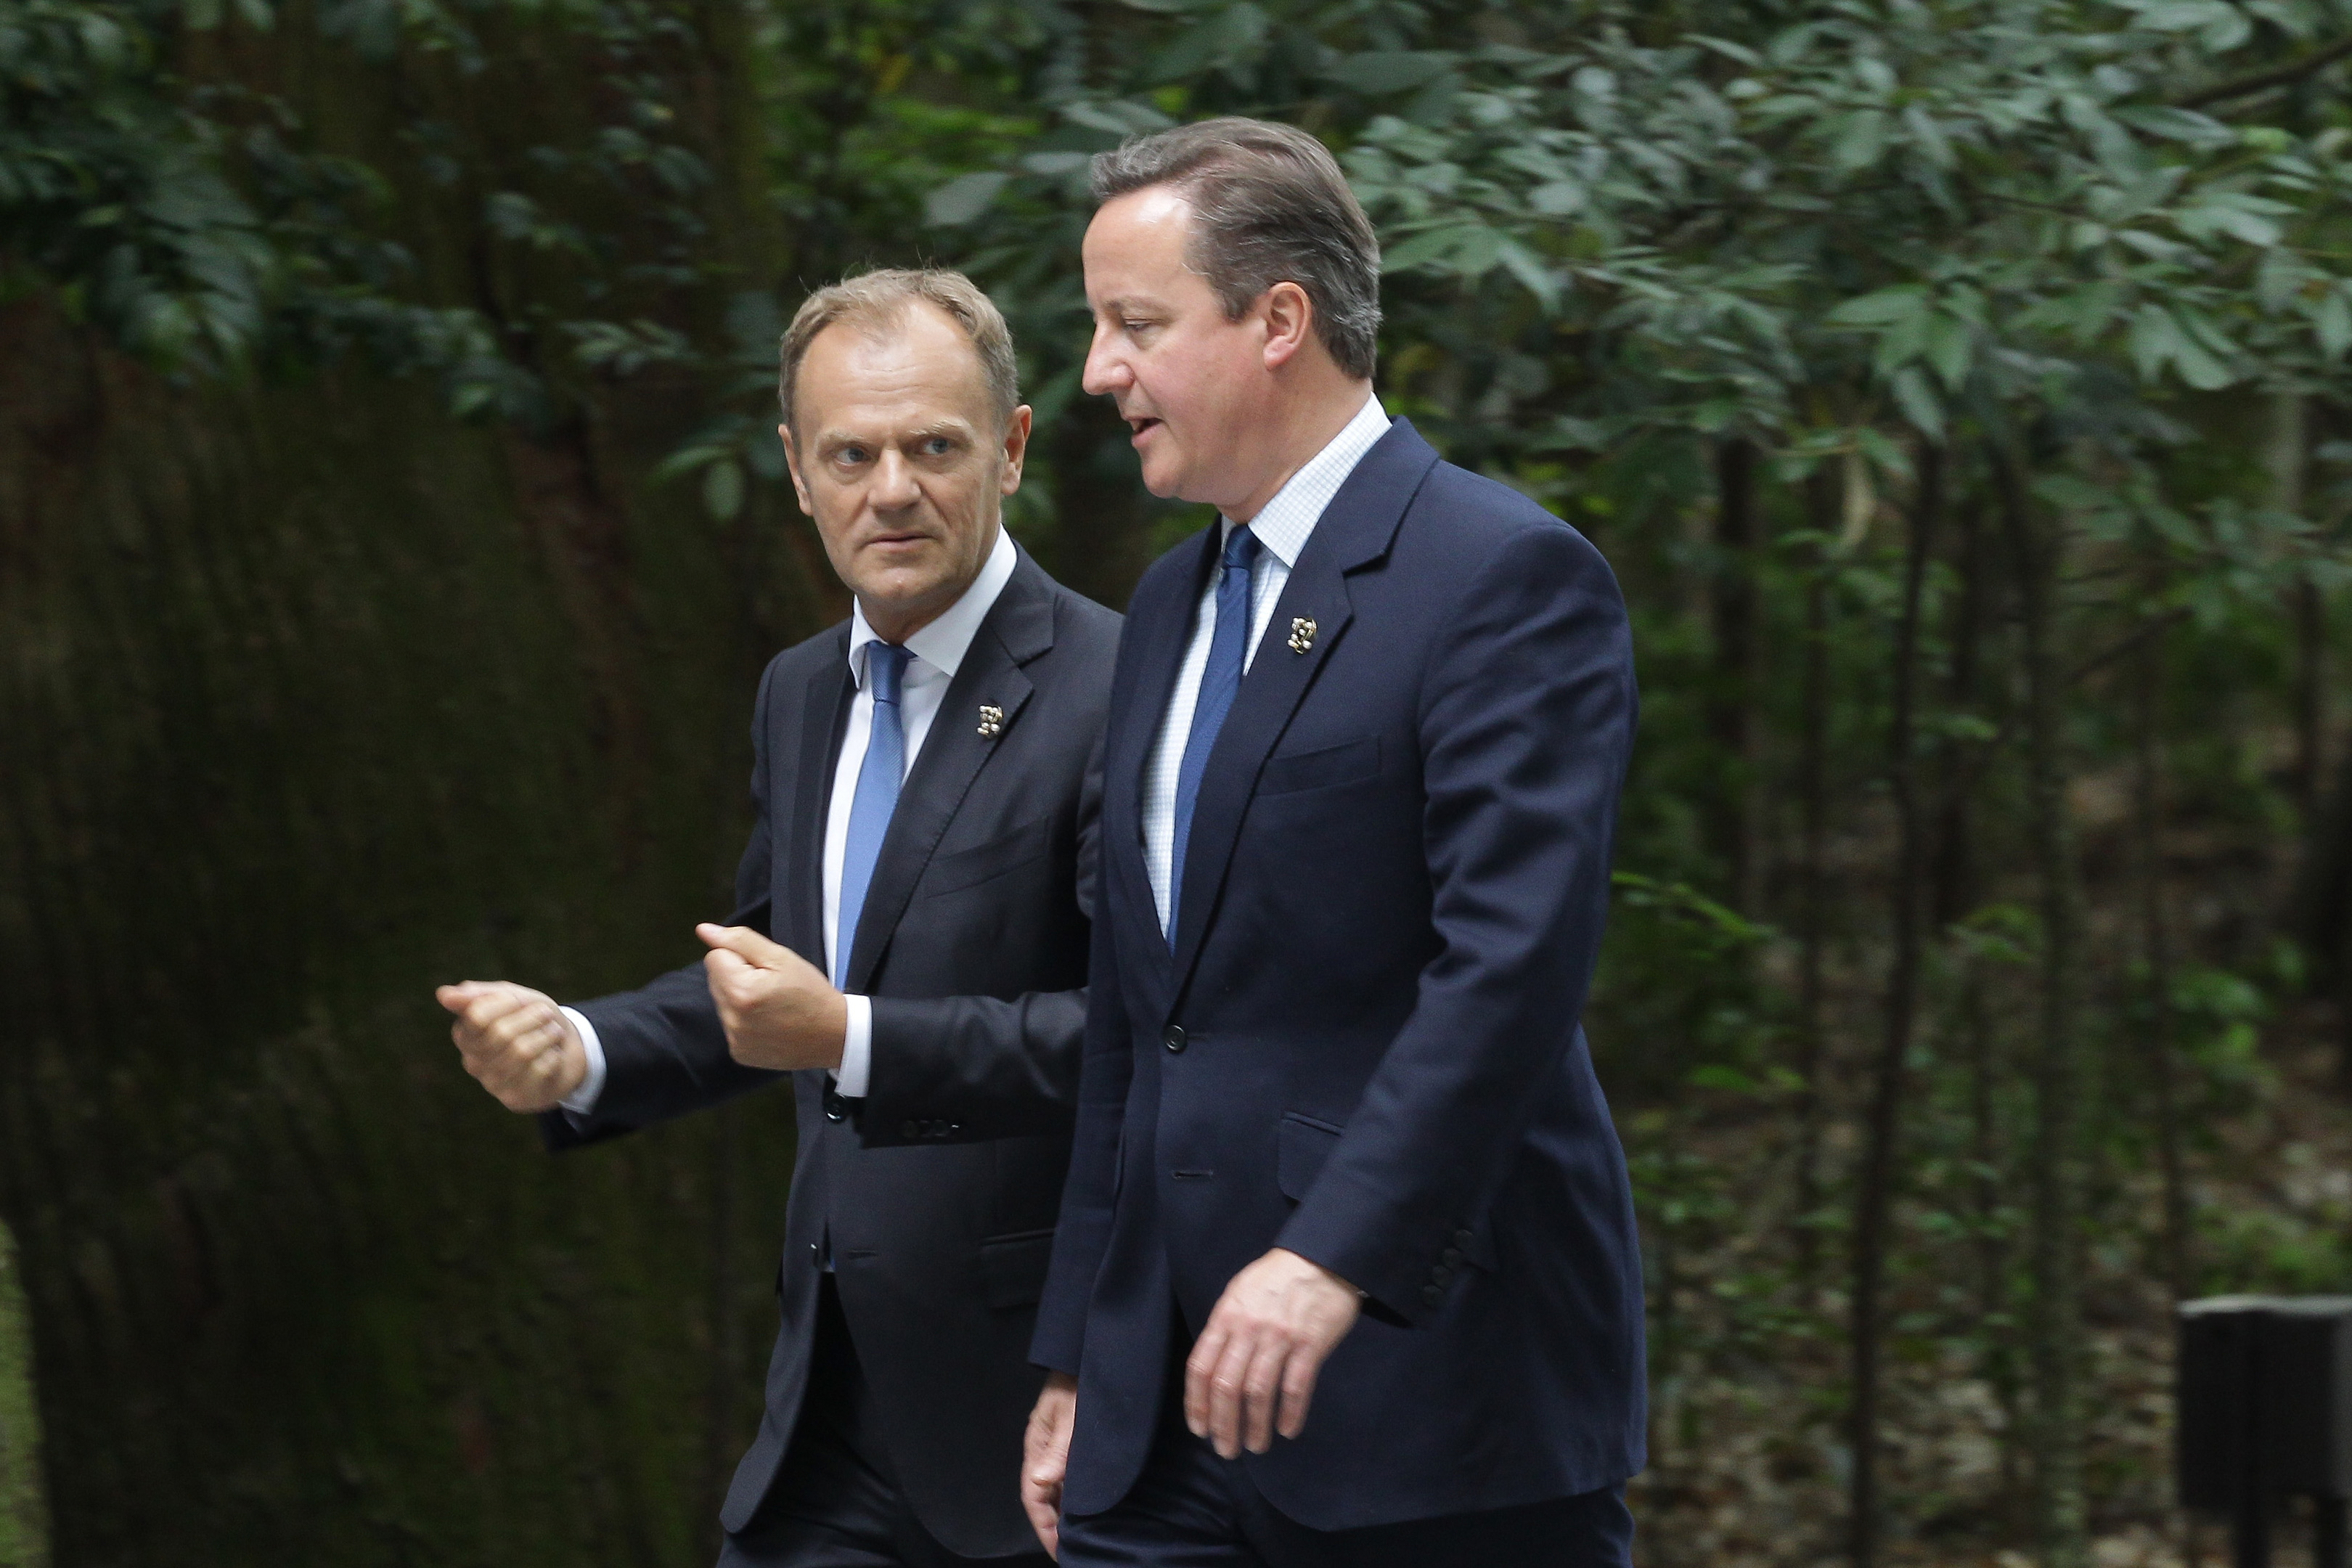 European Council President Donald Tusk talks with Prime Minister David Cameron.